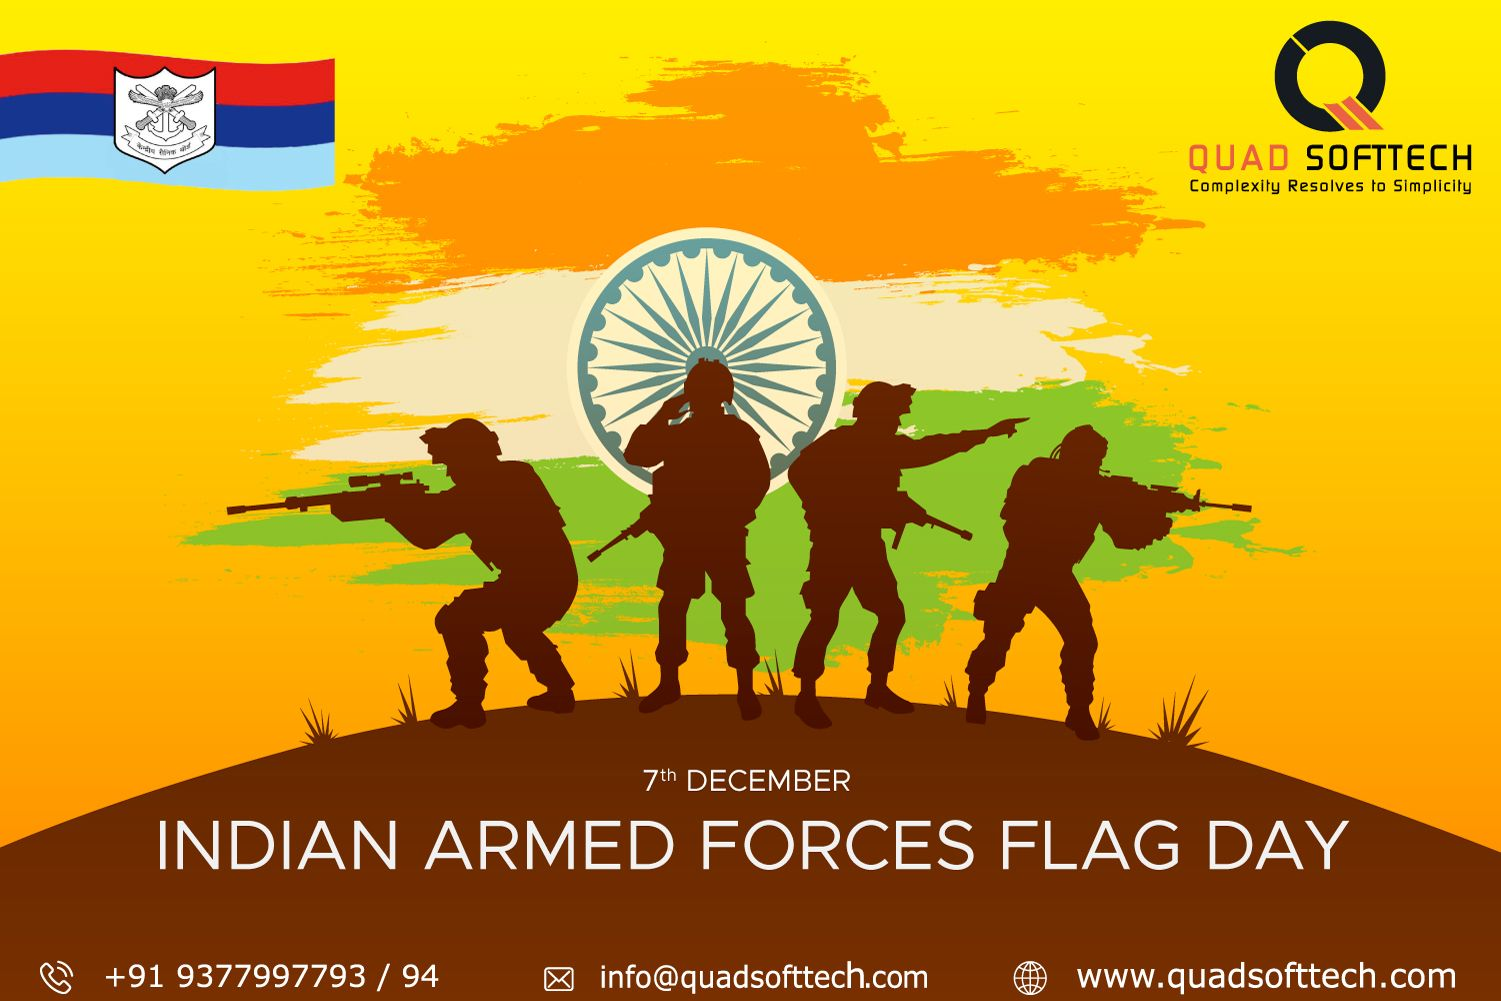 Wishing All The Men In Uniform A Very Happy Indian Armed Forces Flag Day And Thanking Them For Fulfilling Armed Forces Flag Day Web Design Company Armed Forces